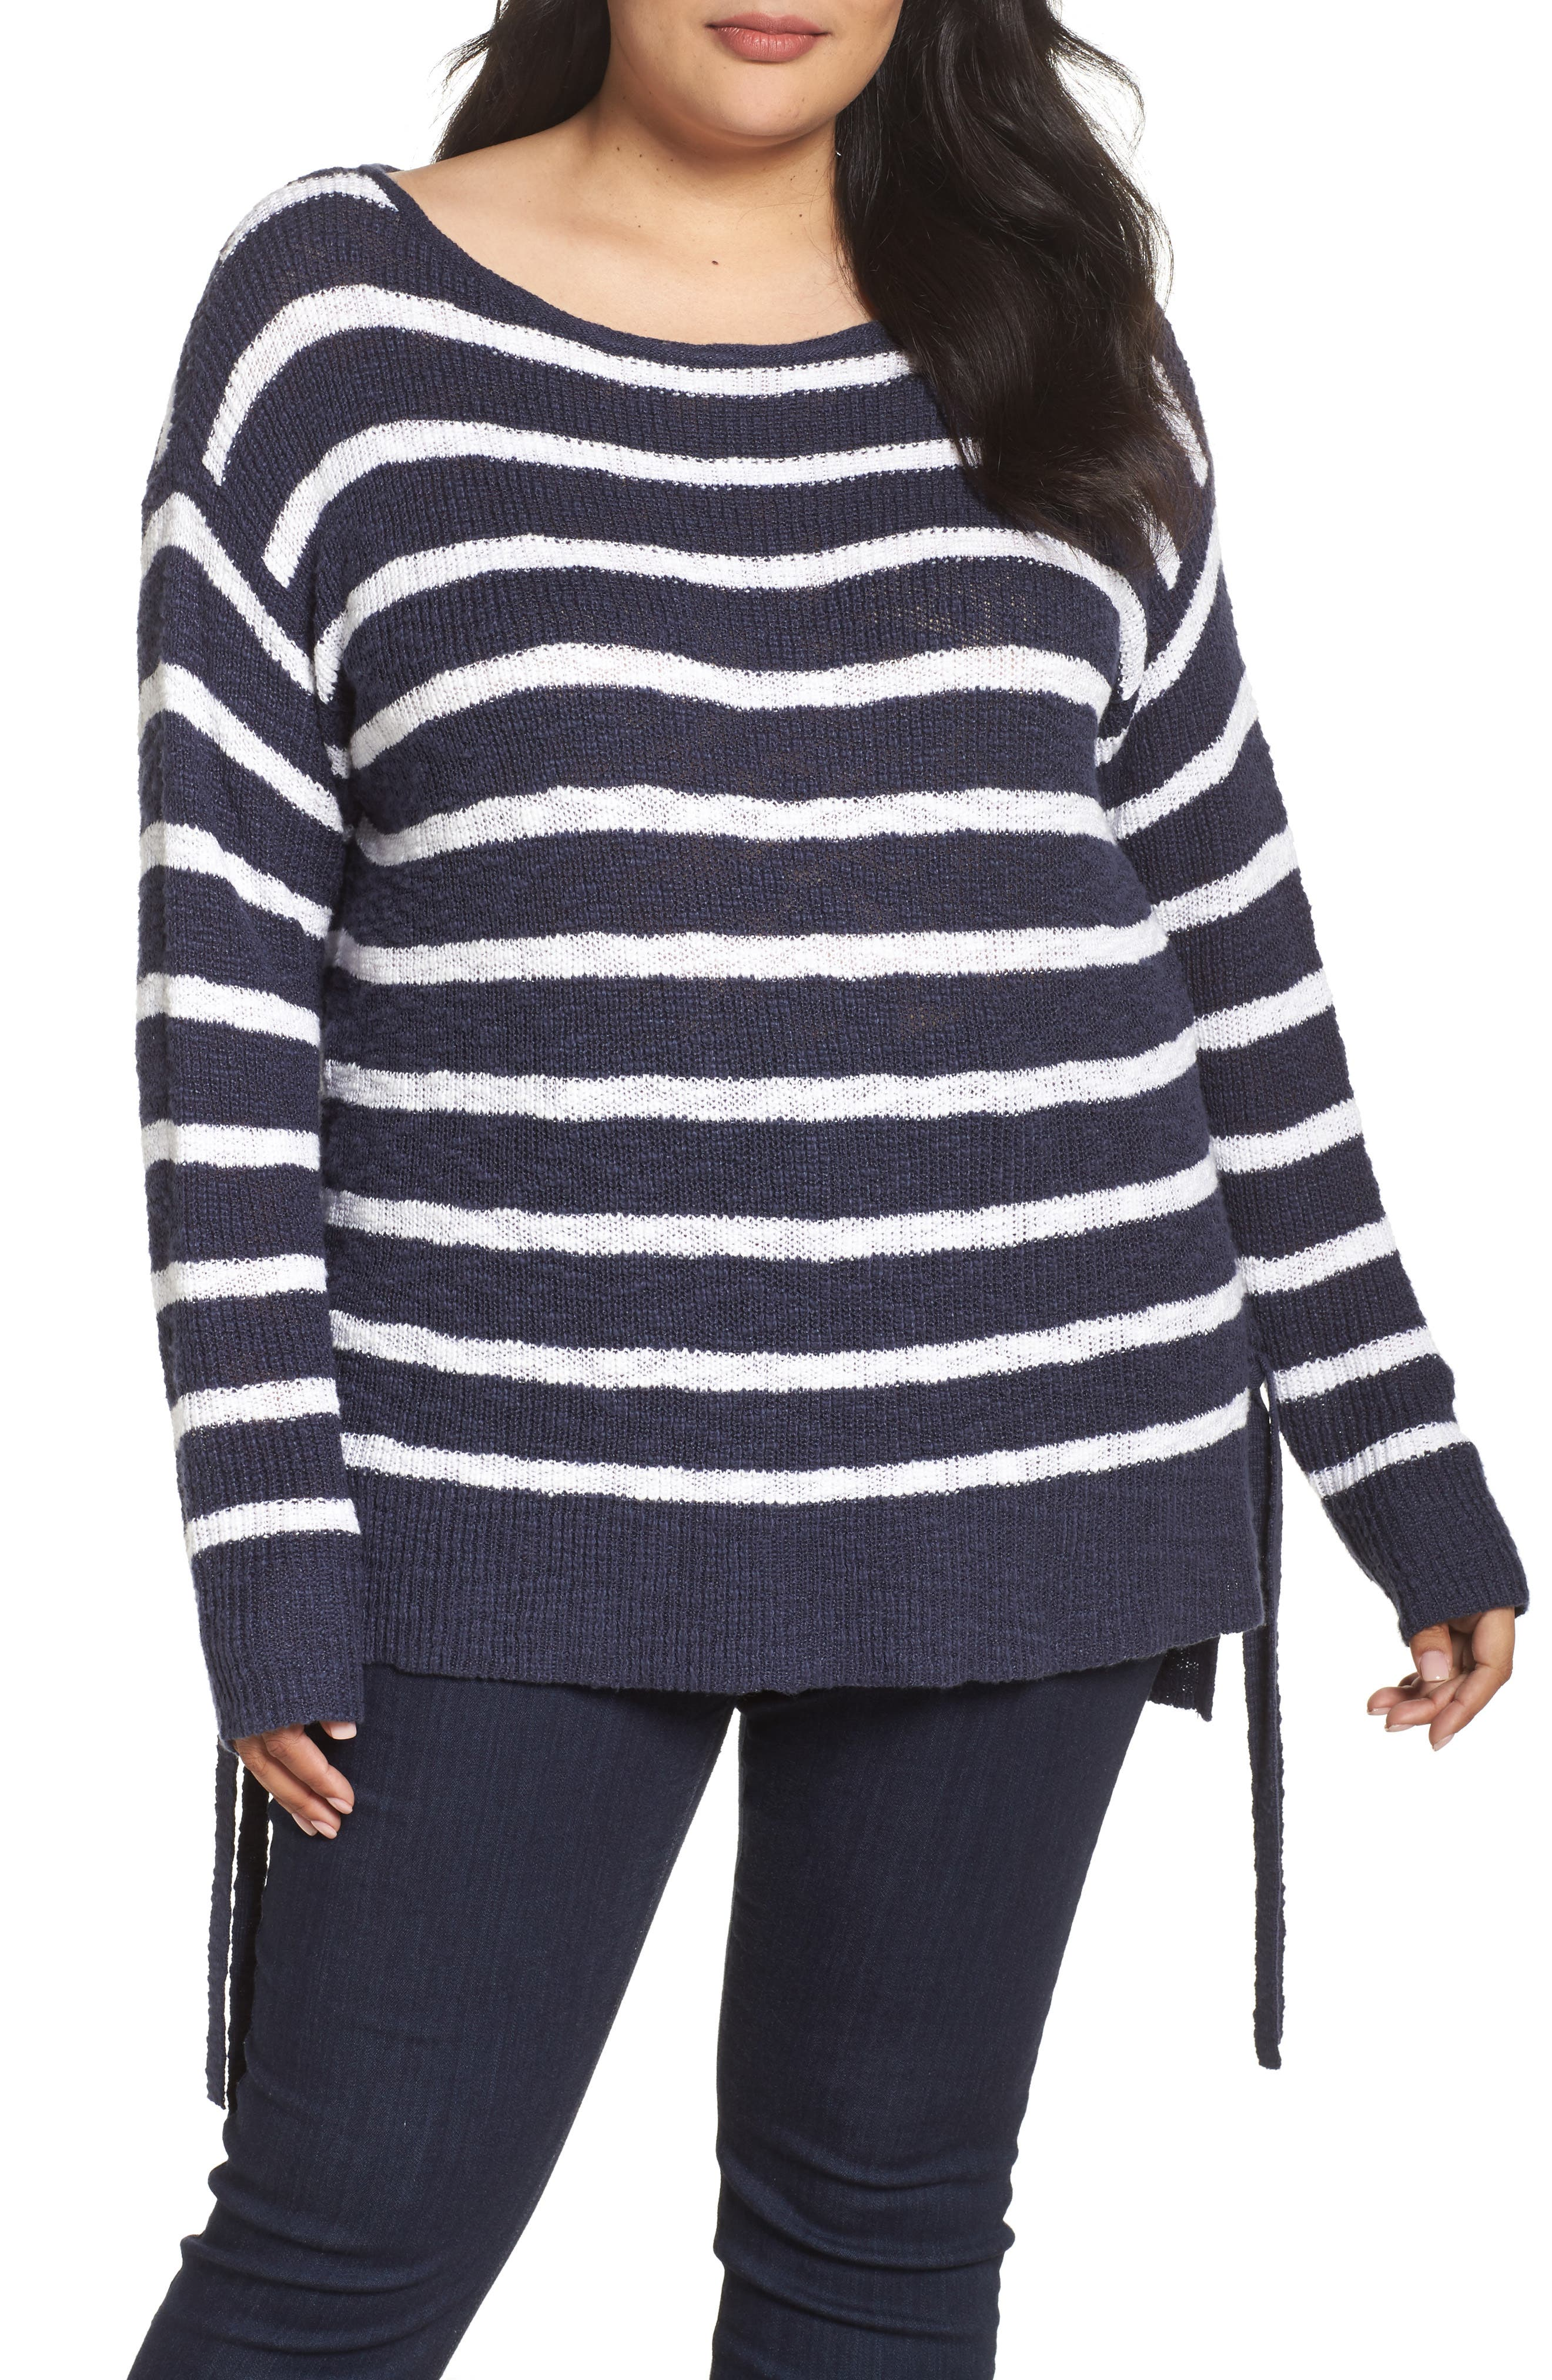 Tunic Sweater with Side Ties,                         Main,                         color, Navy- White Stripe